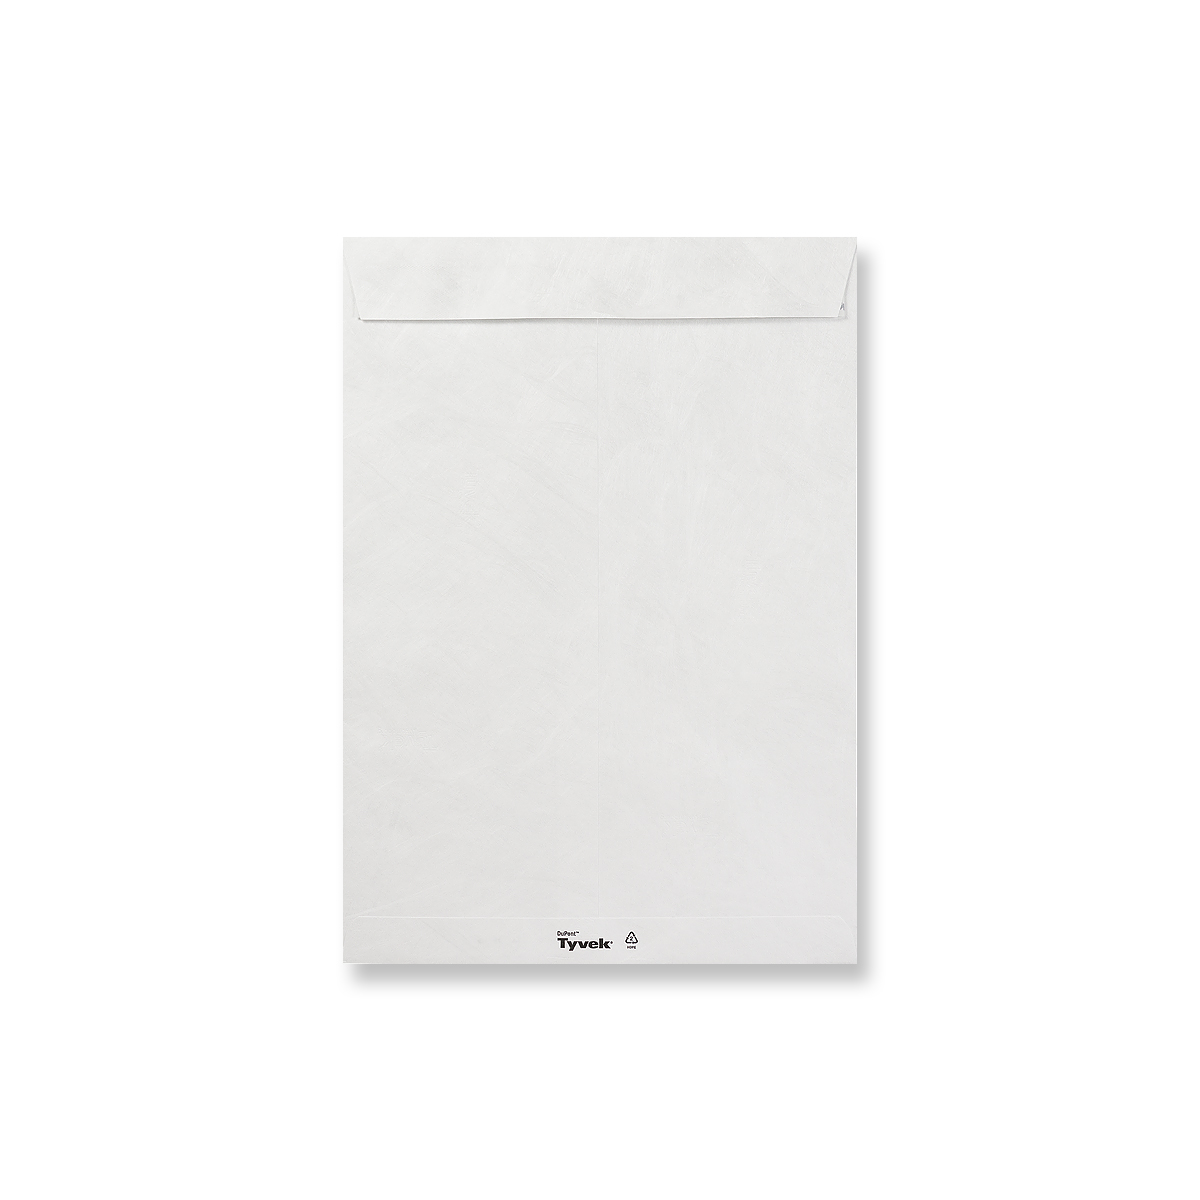 C4 WHITE TYVEK ENVELOPES